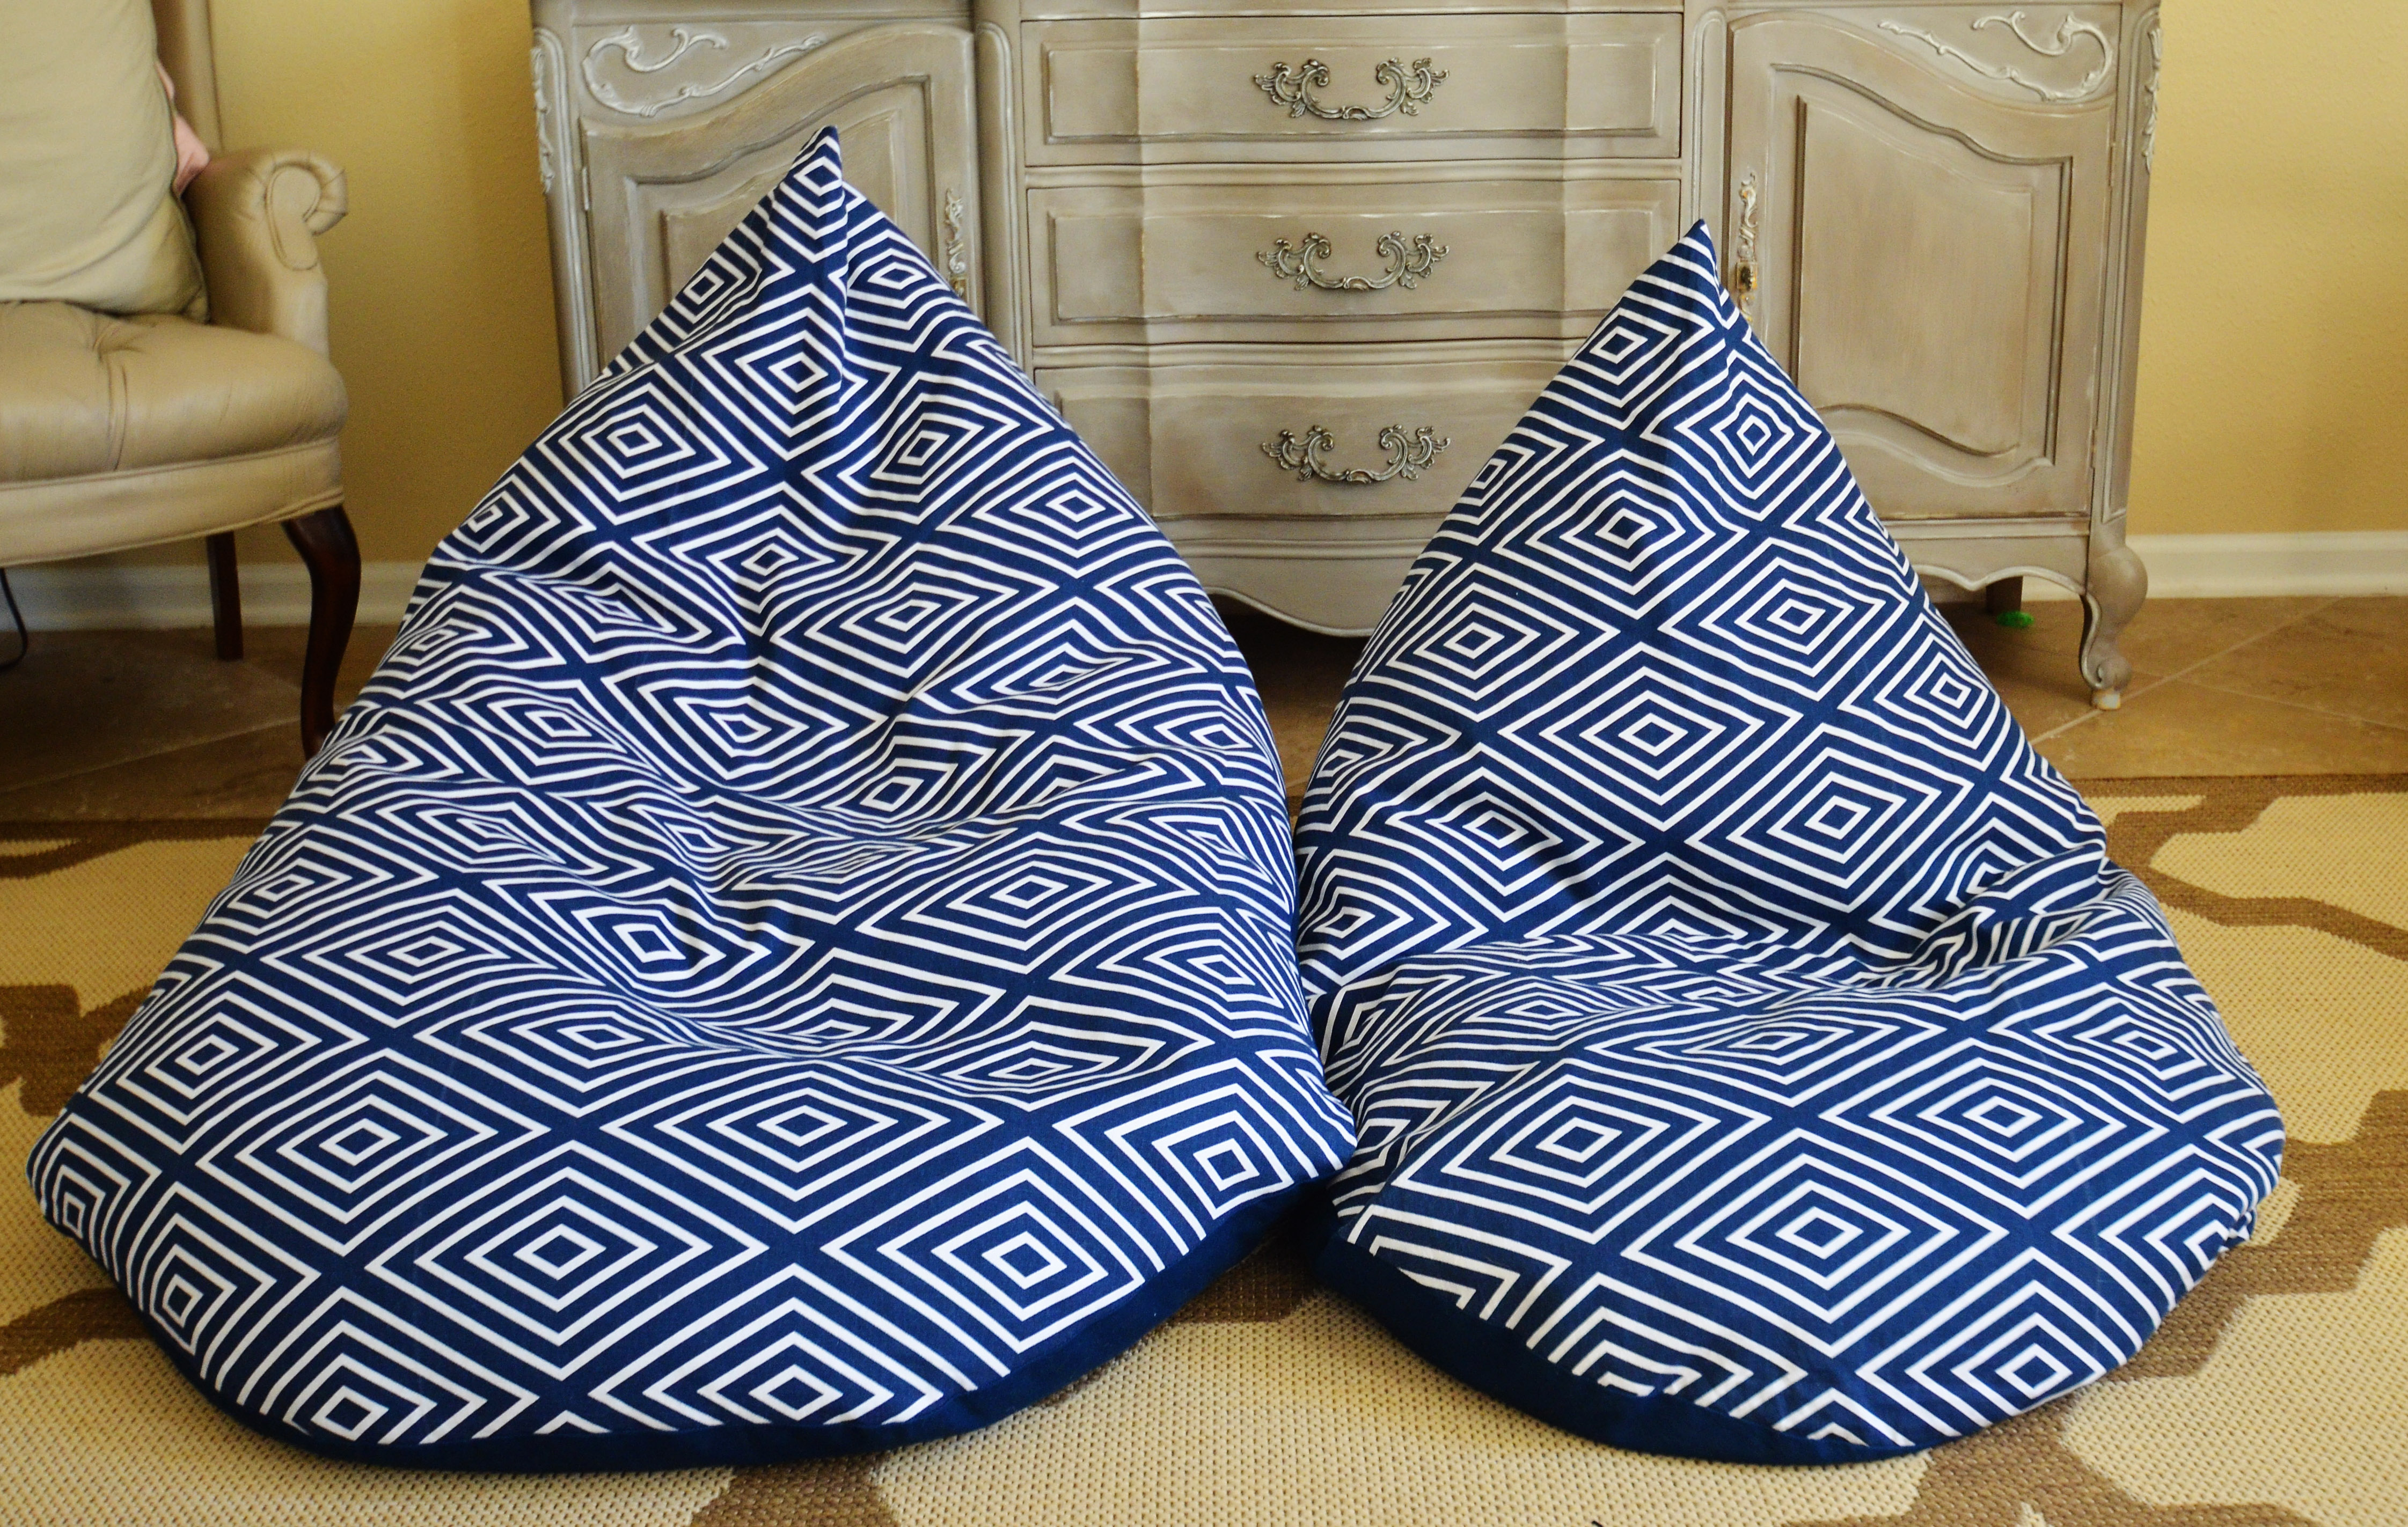 White Bean Bag Chair Ikea Great Cool Ikea Living Room Sets Buy